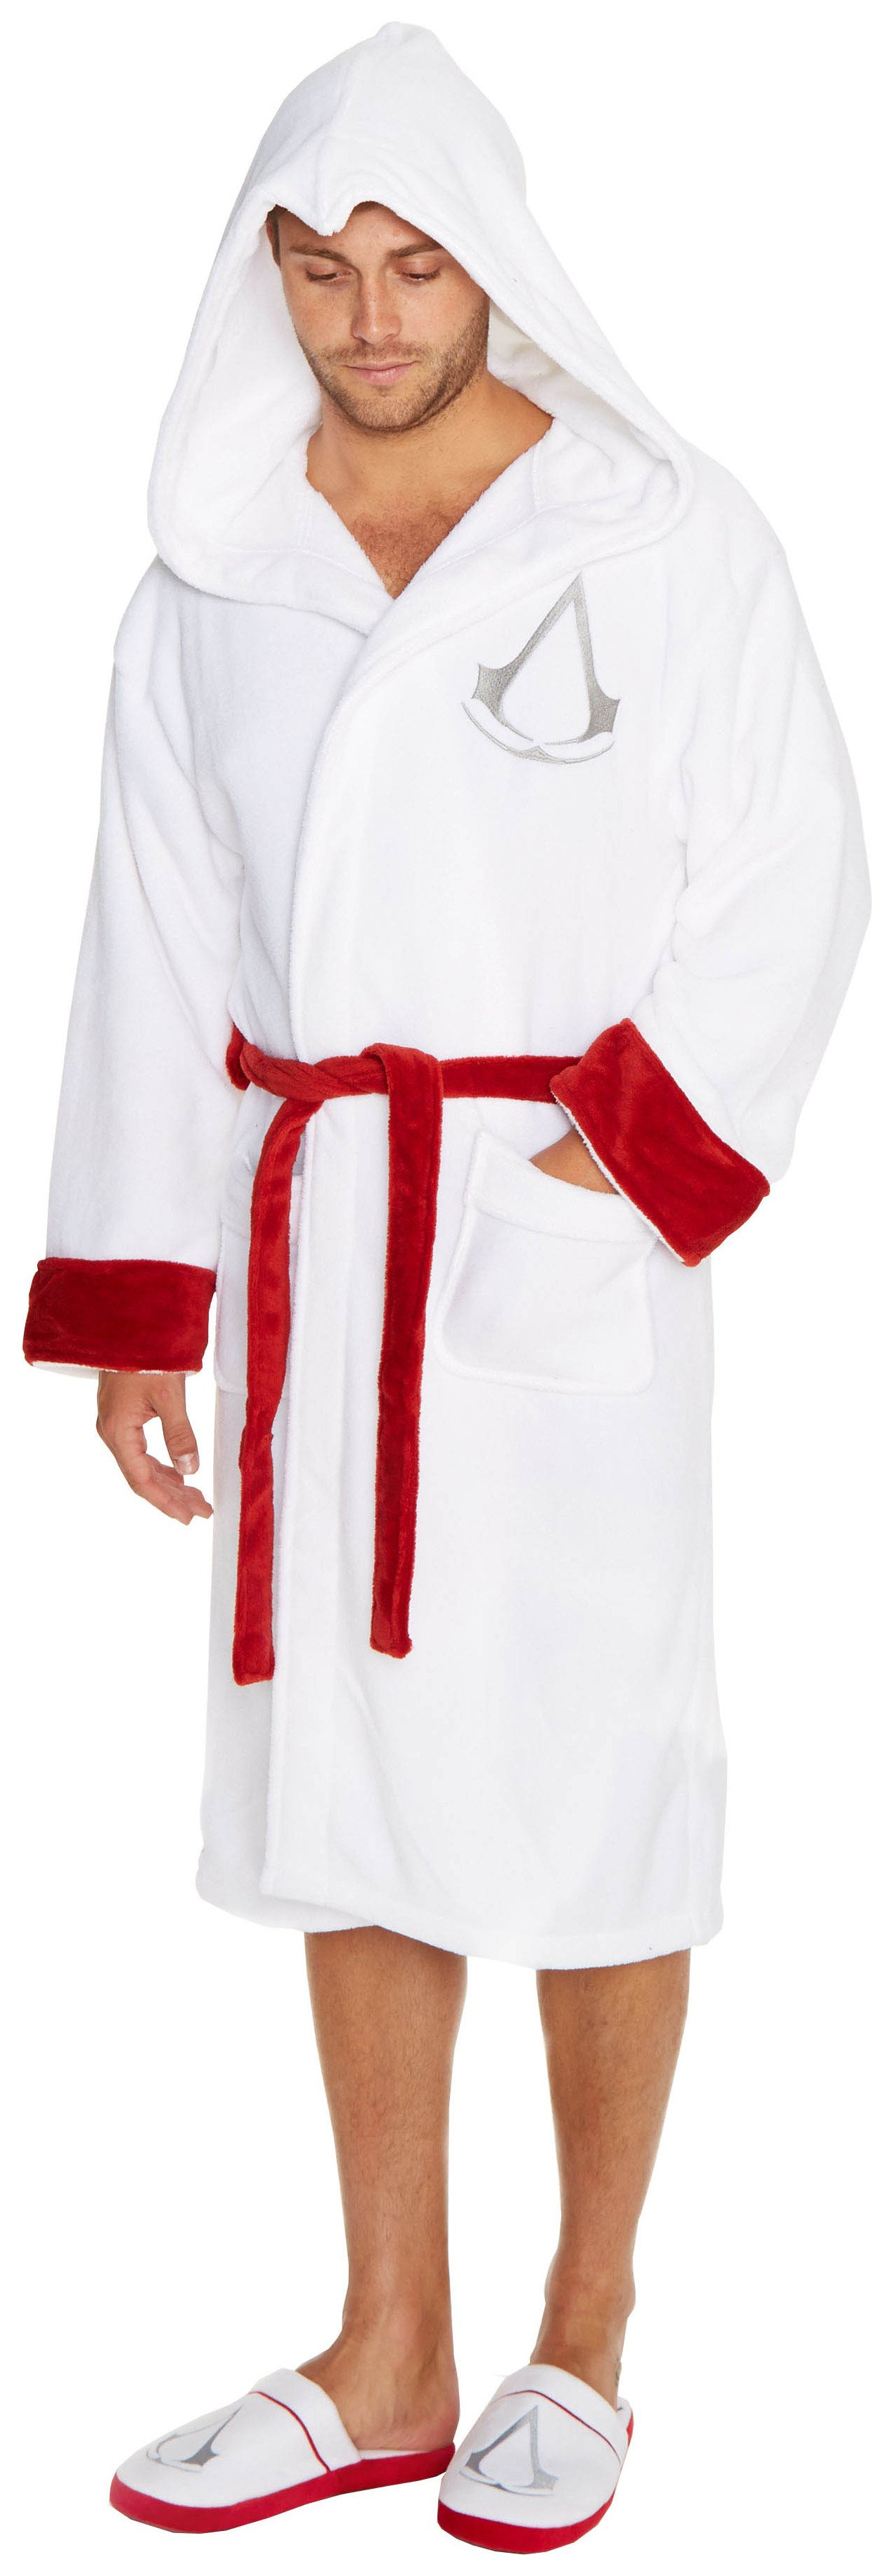 Image of Assassins Creed Robe